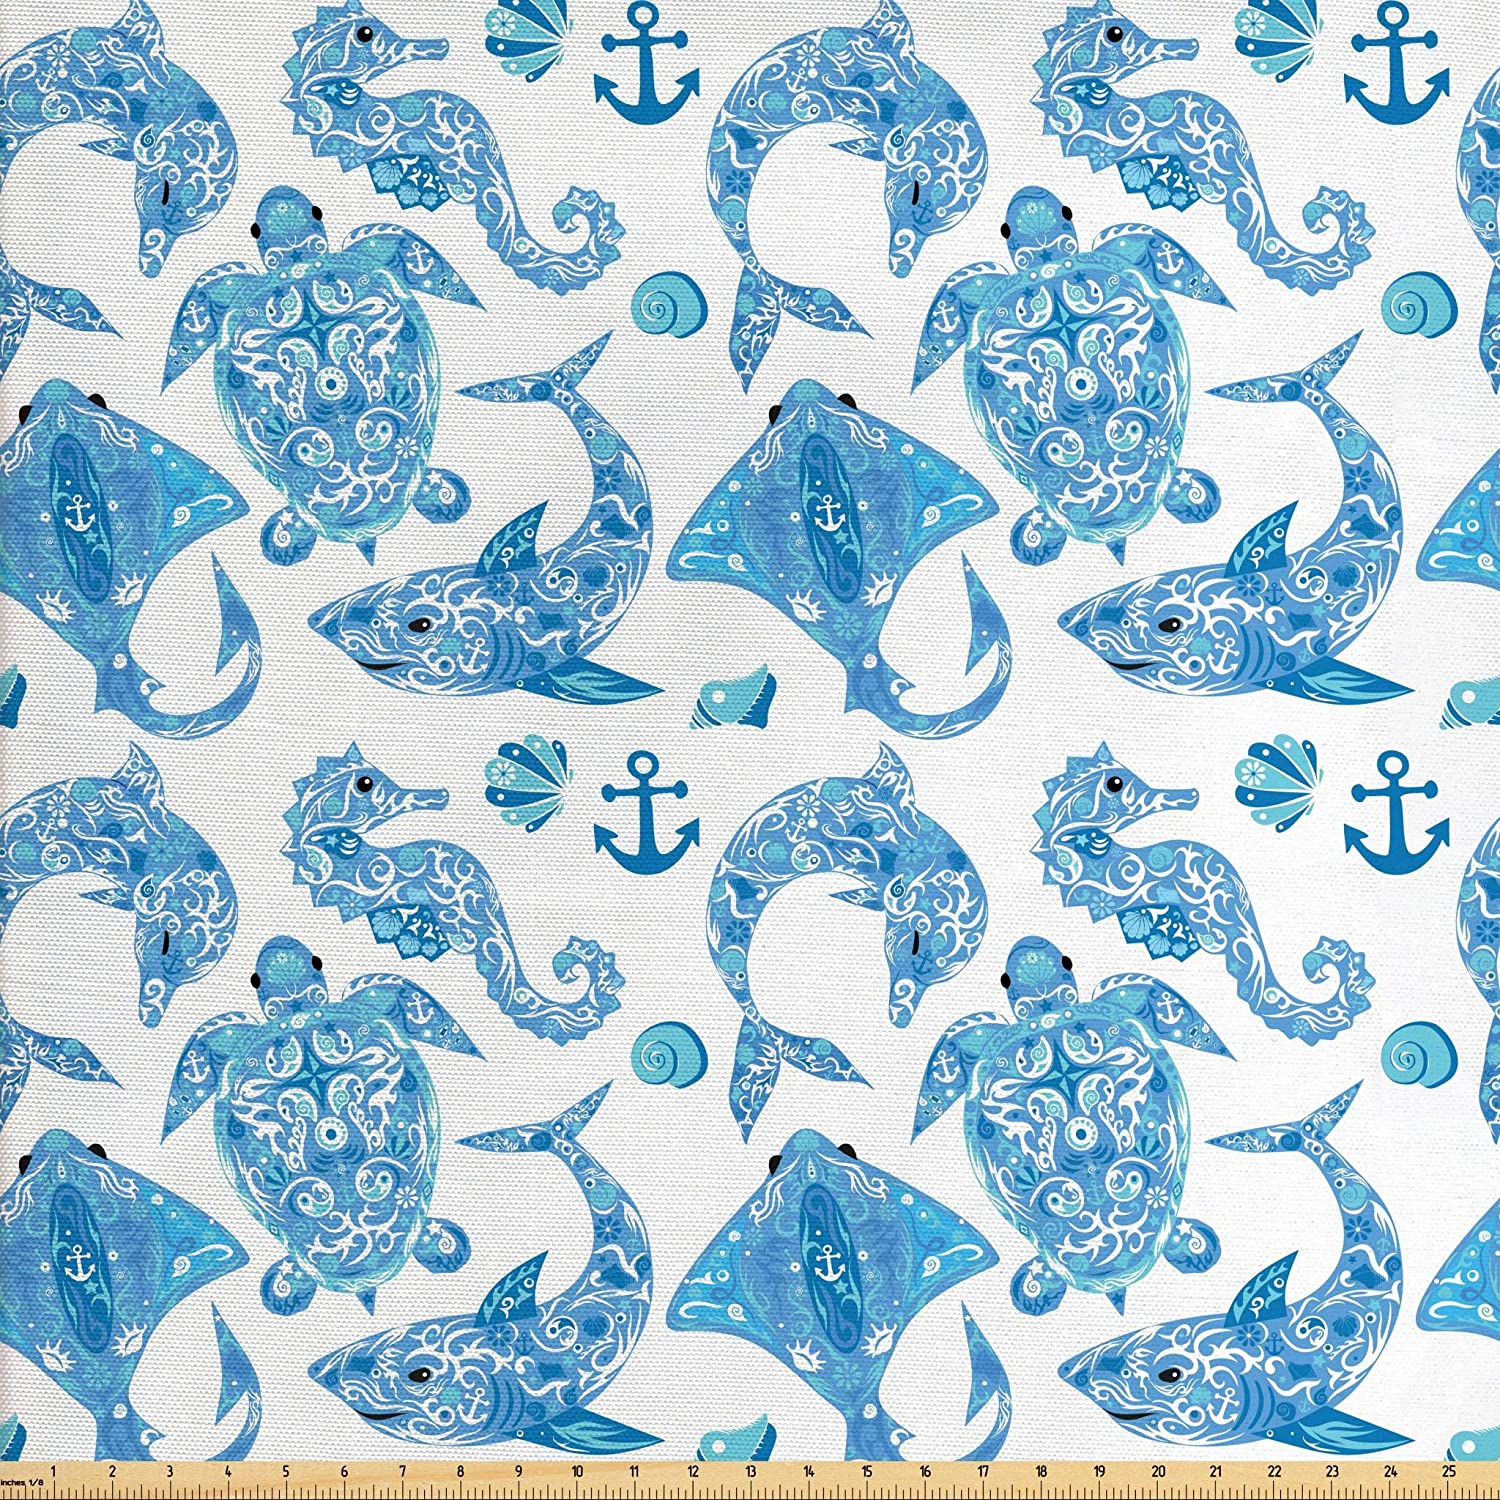 Lunarable Anchor Fabric by The Yard, Pattern with Turtle Dolphin Sea Horse Mollusk Shark Fauna Exotic Tropical Aquatic, Decorative Fabric for Upholstery and Home Accents, 1 Yard, Sky Blue